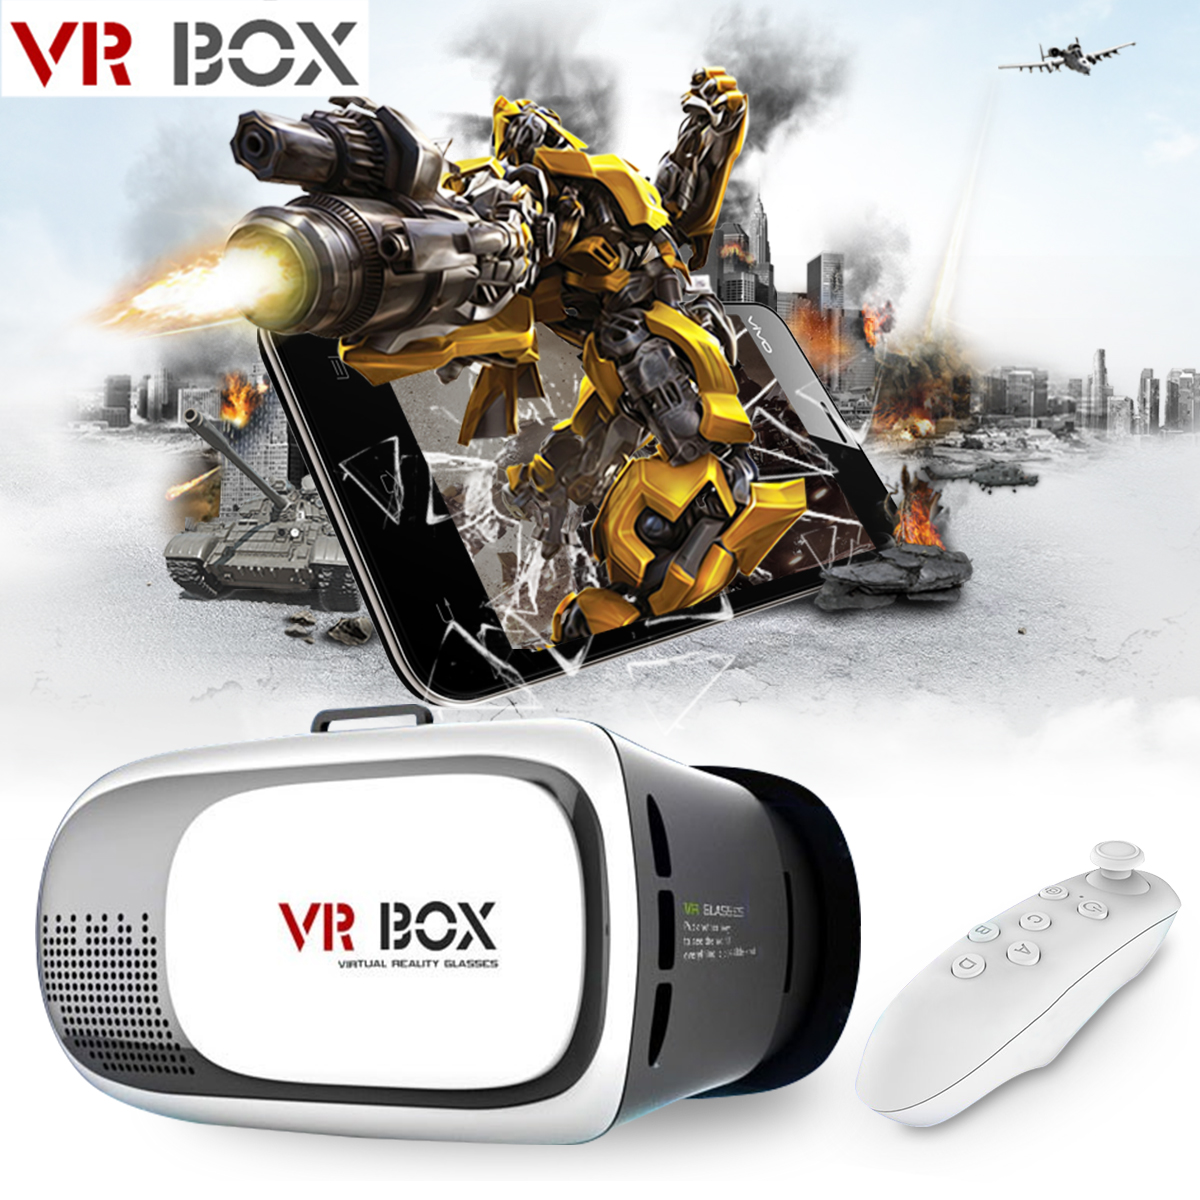 Google CardBoard VR Box Virtual Reality 3D Glasses For iPhone 5S 6 6S Plus TH192<br><br>Aliexpress